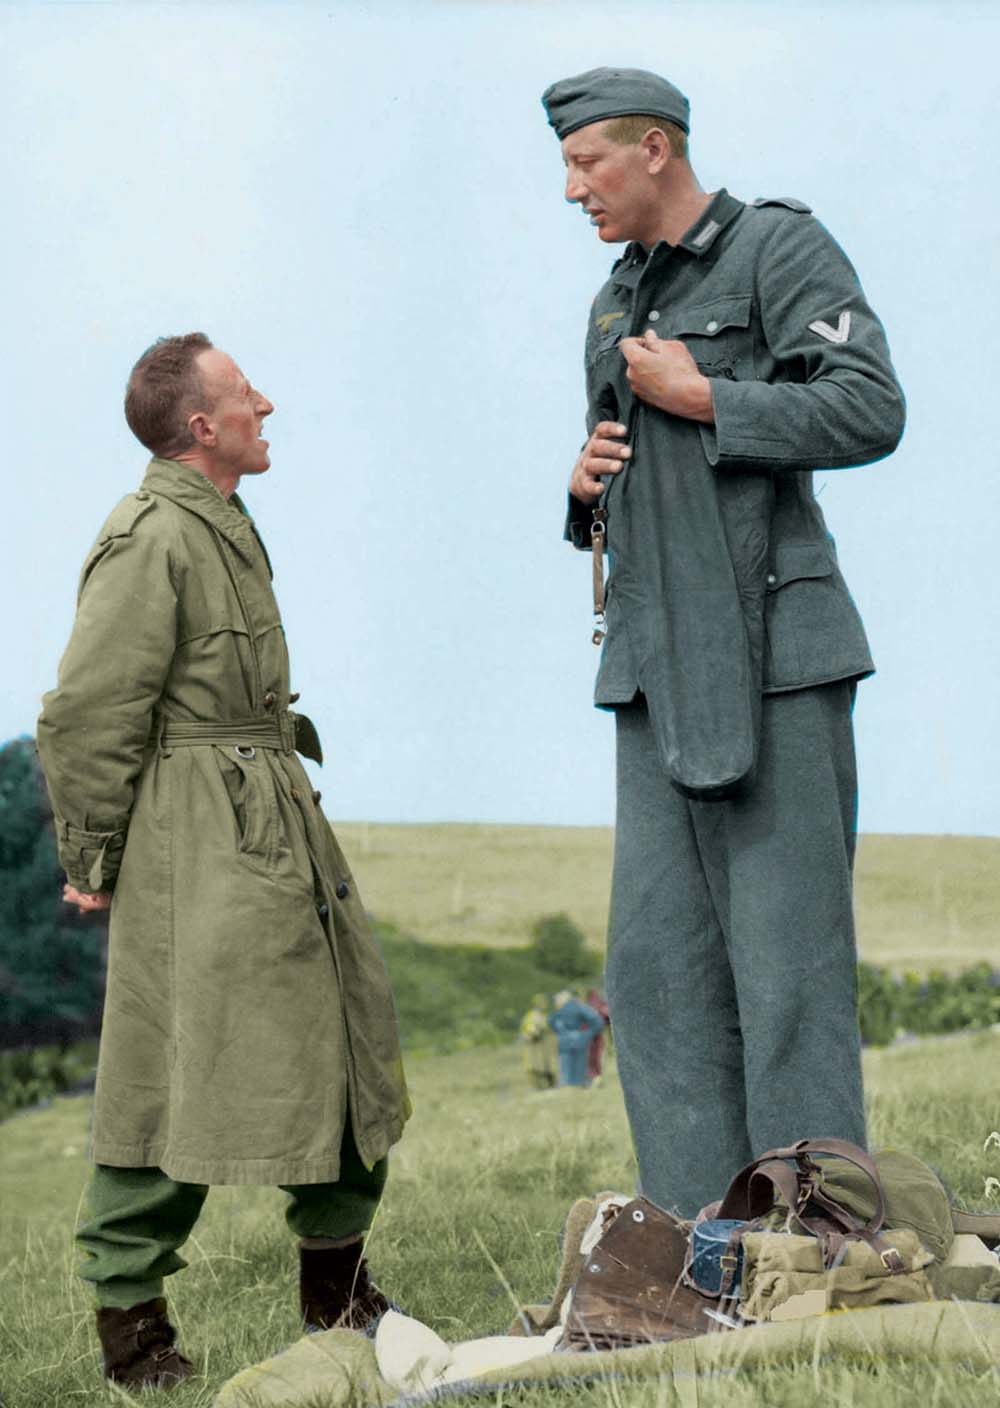 7'3'' Jakob Nacken (221 cm), the tallest German soldier of WW2, chatting with 5'7'' (170 cm) Eddie Worth, AP photographer with the wartime still picture pool, after his surrender.